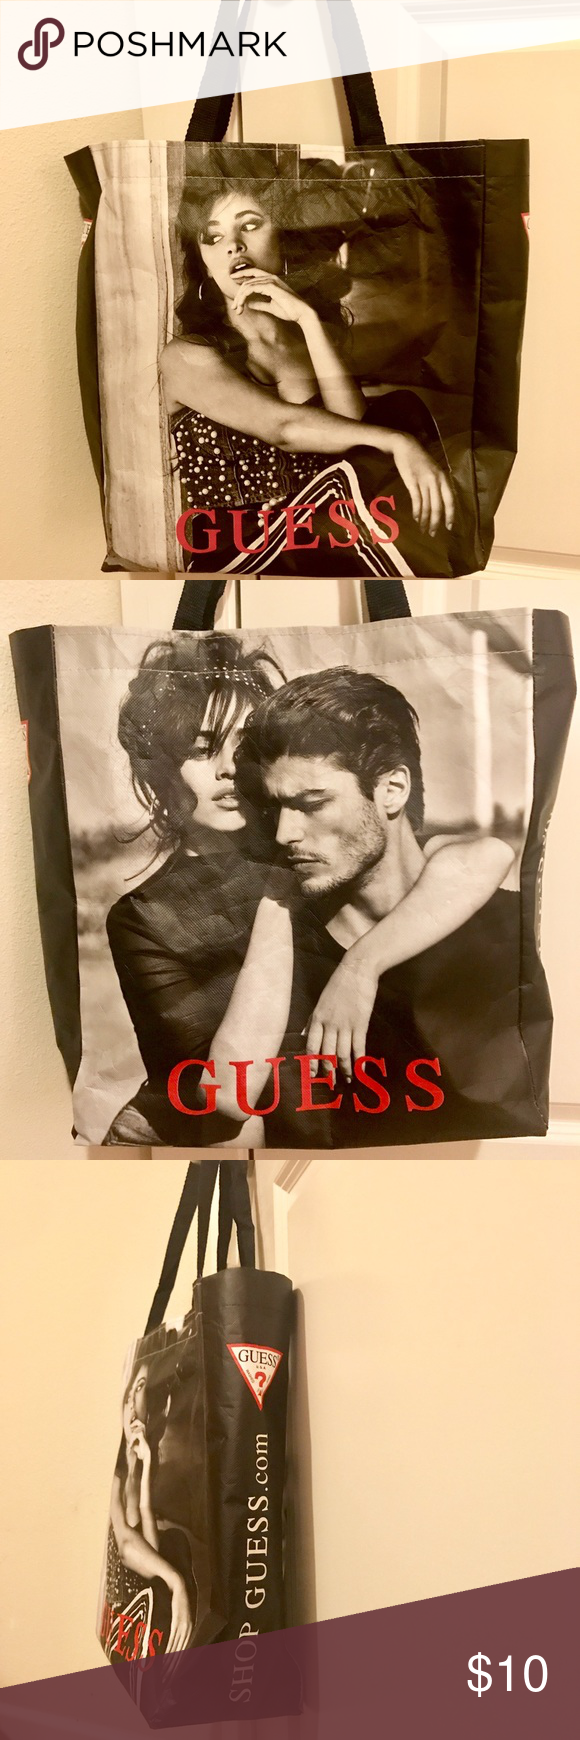 Camila Cabello Guess Tote Bag Reusable tote from guess